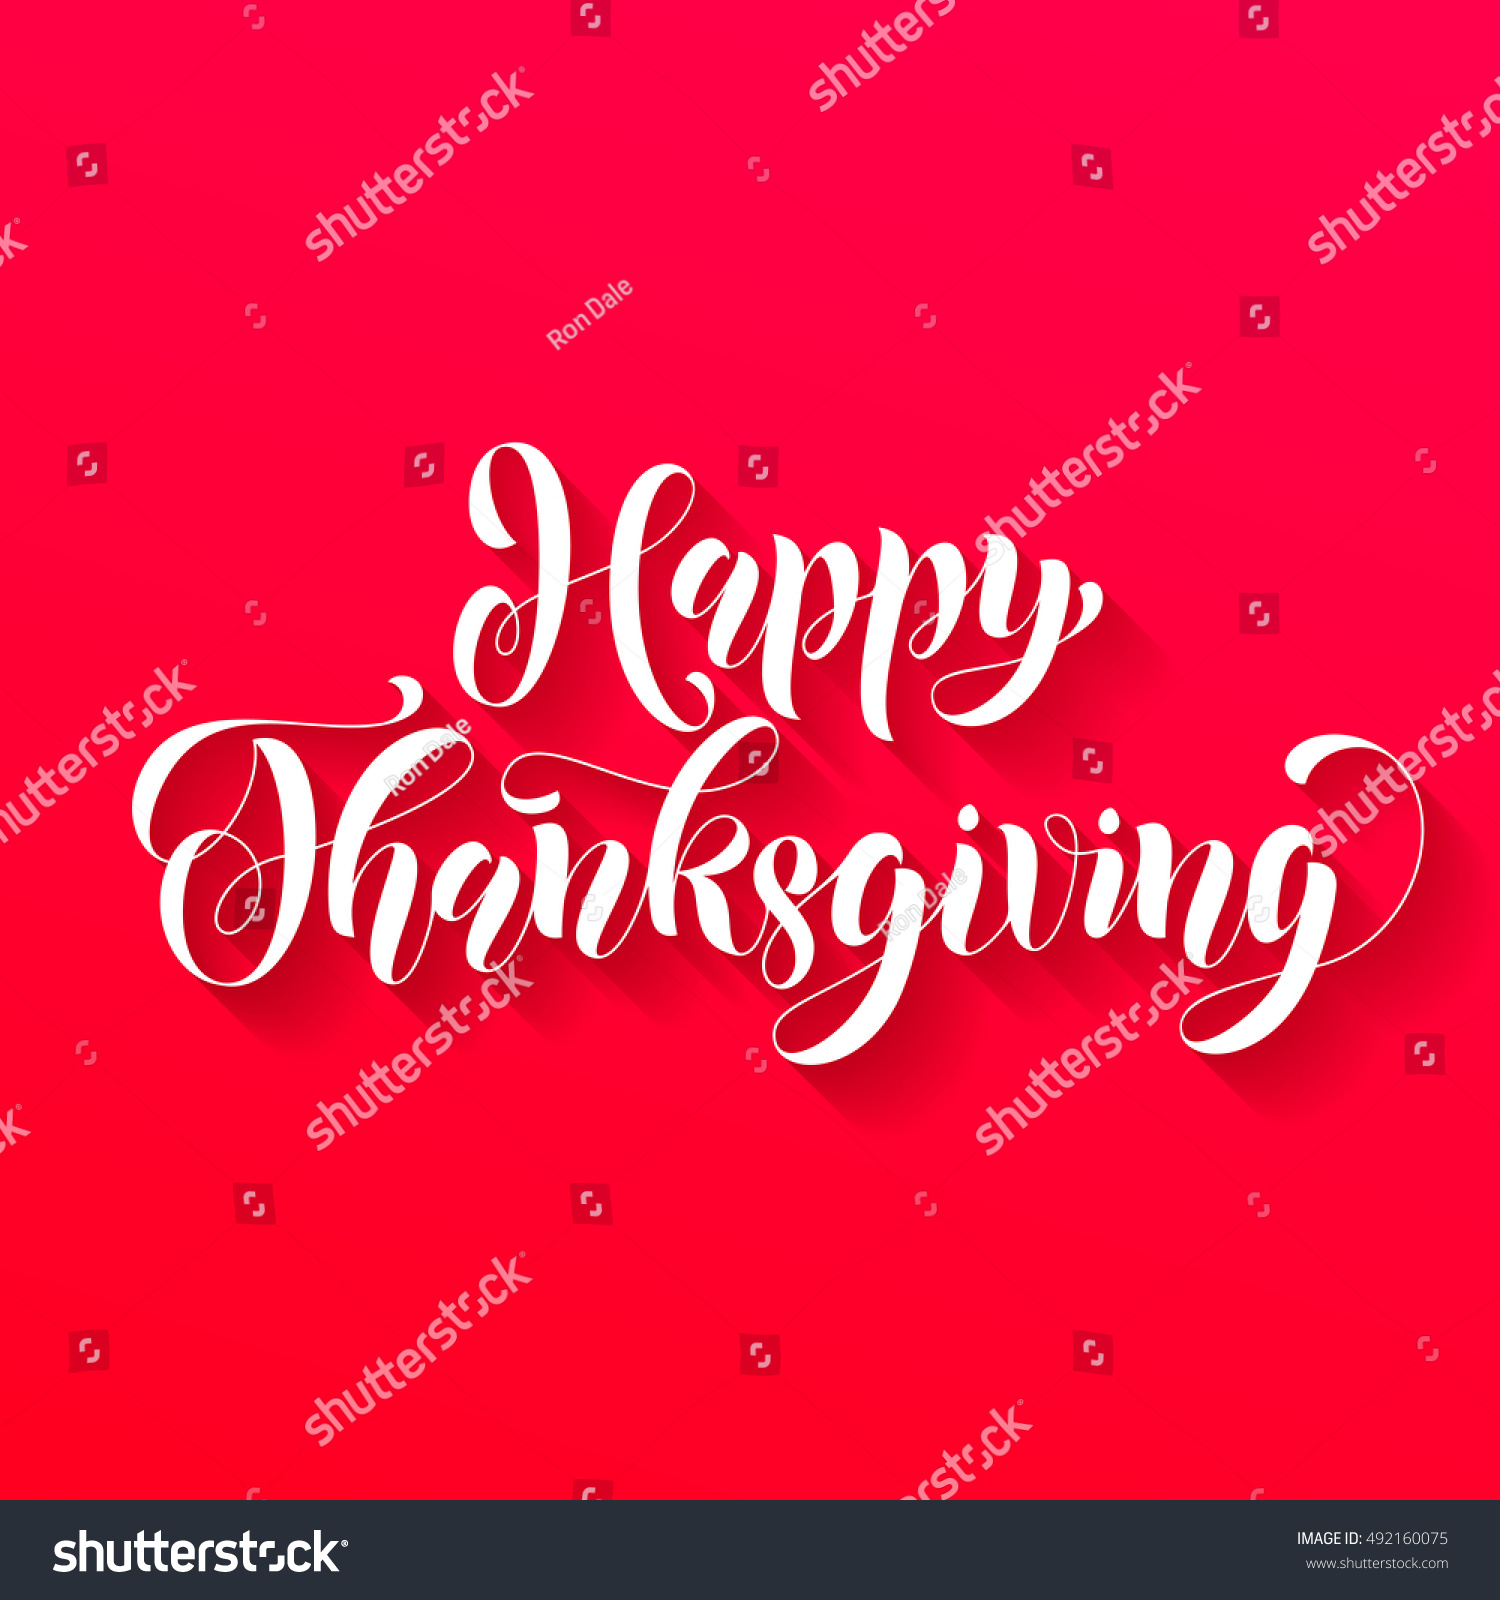 Happy Thanksgiving Greetings Holiday Card Vector Red Ornate